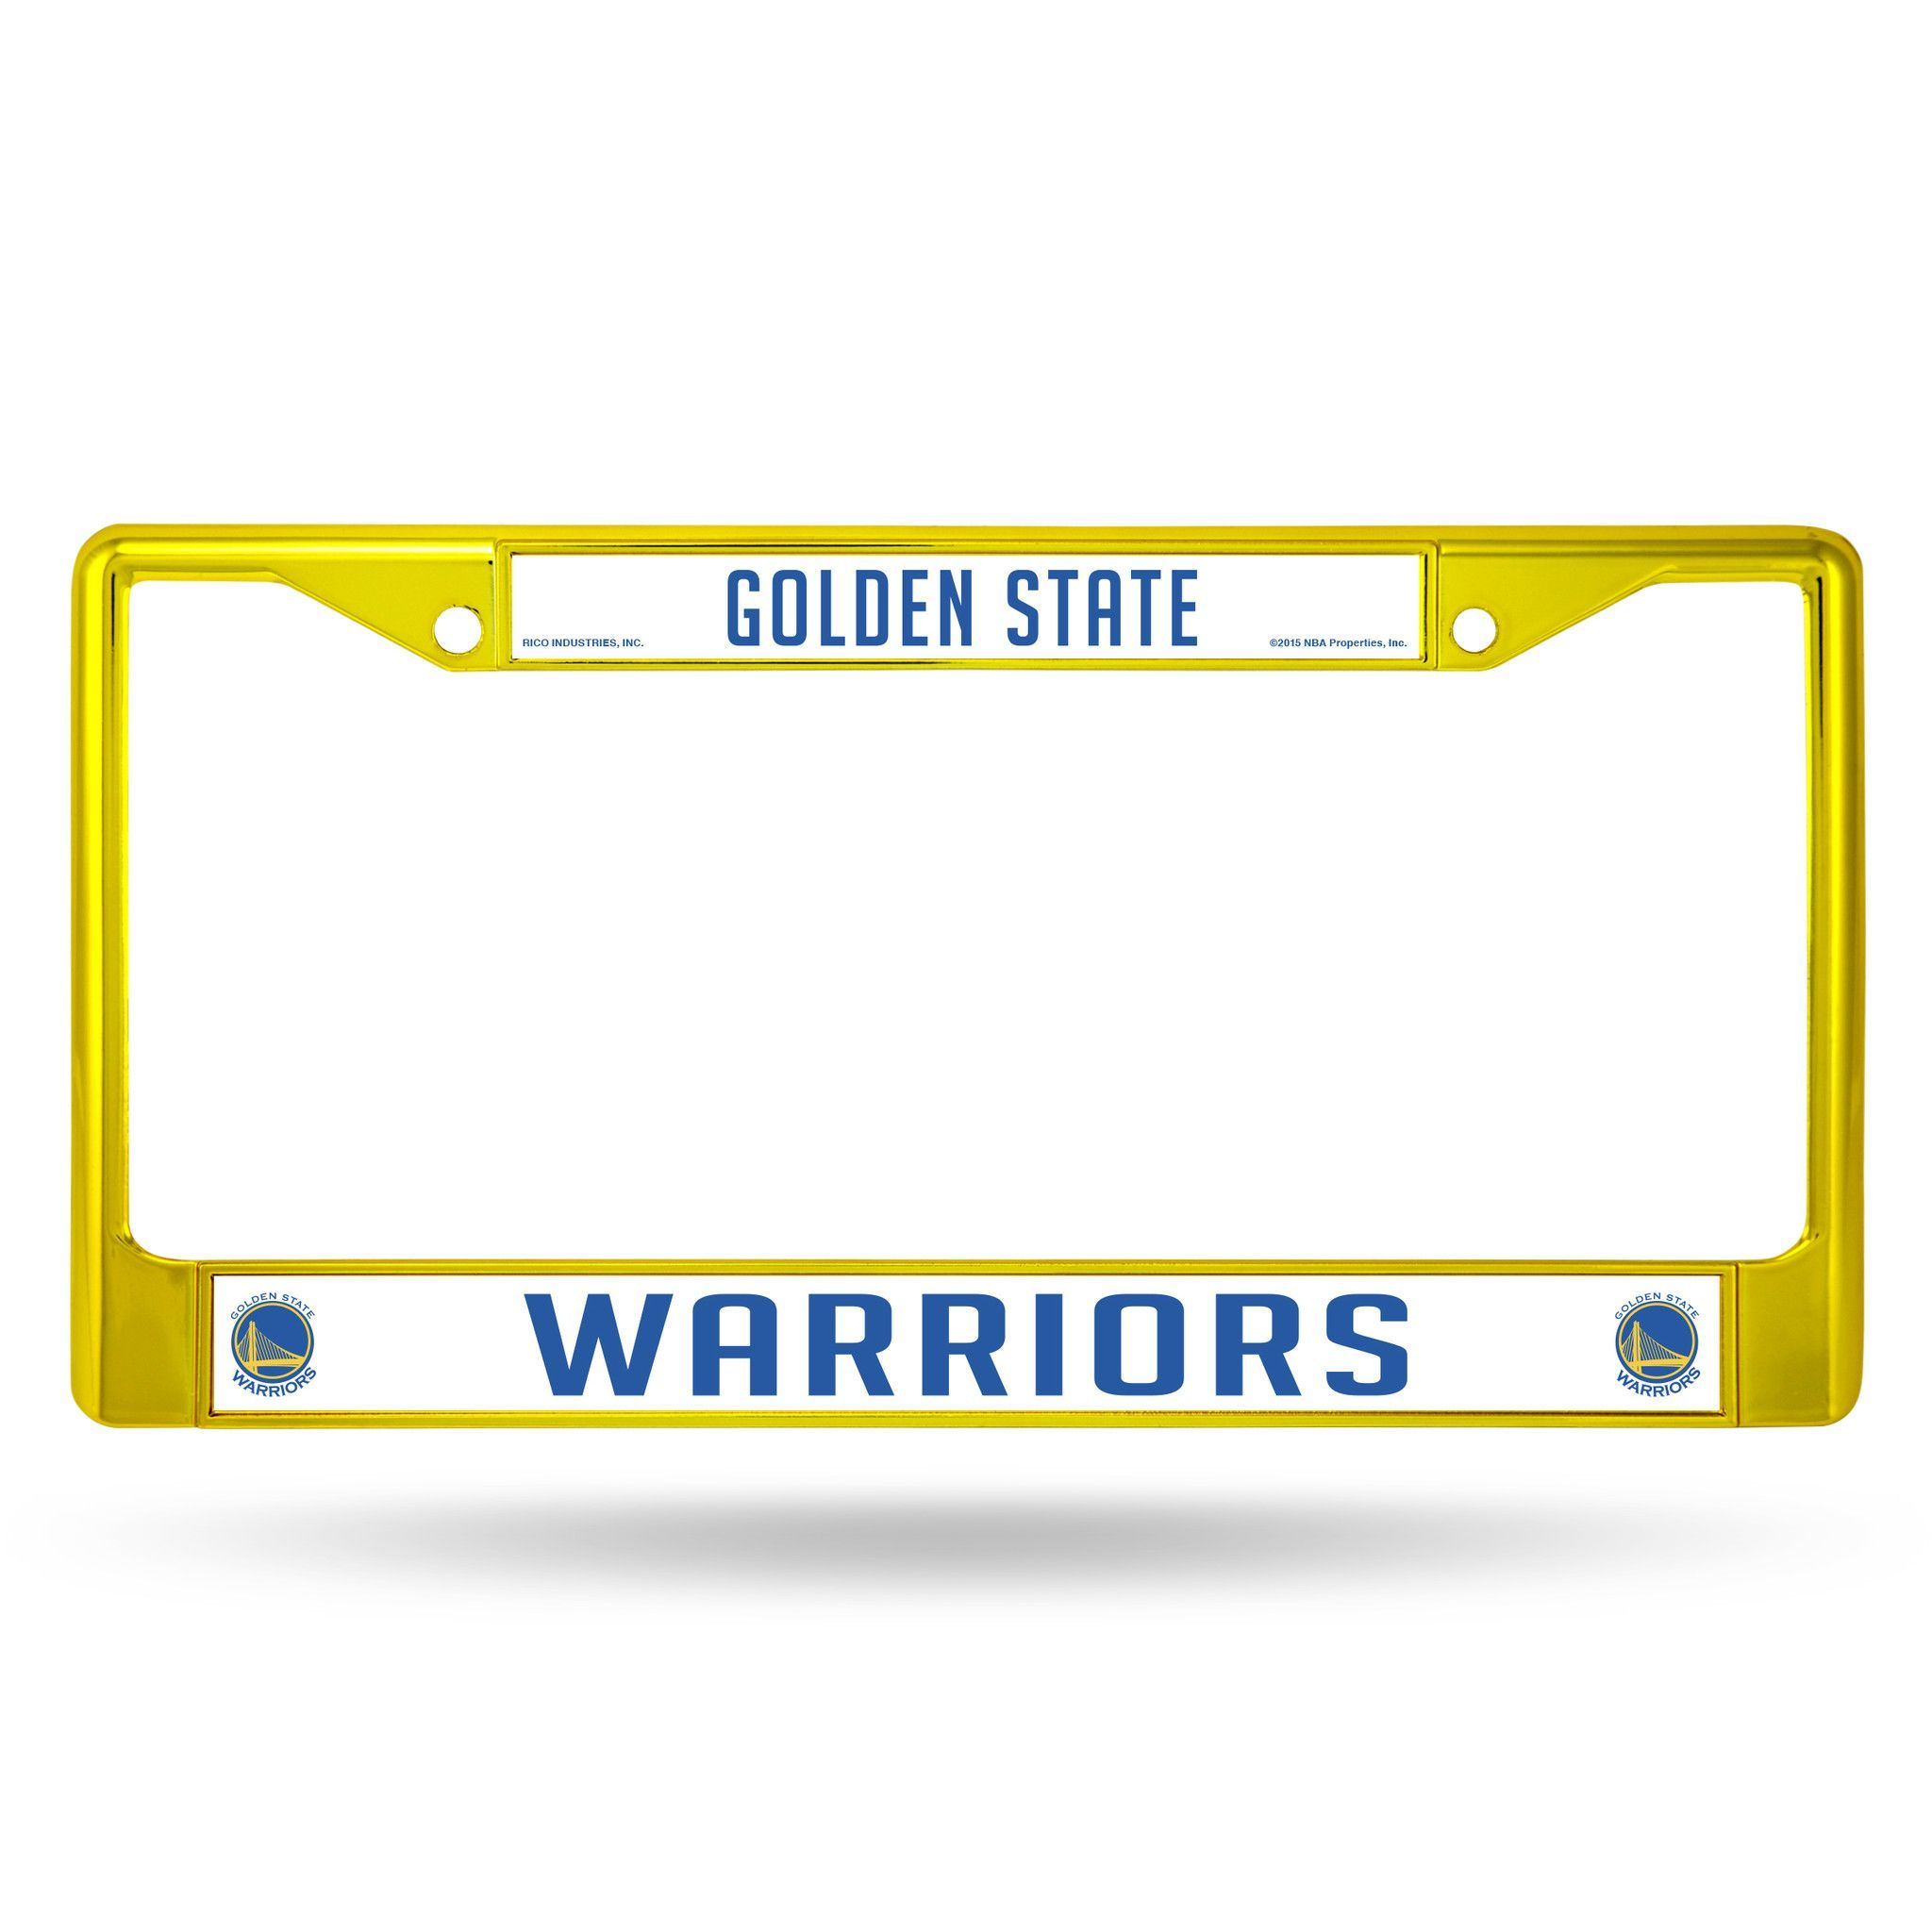 Golden State Warriors Color Chrome Metal License Plate Frame NEW Free Shipping! Gold